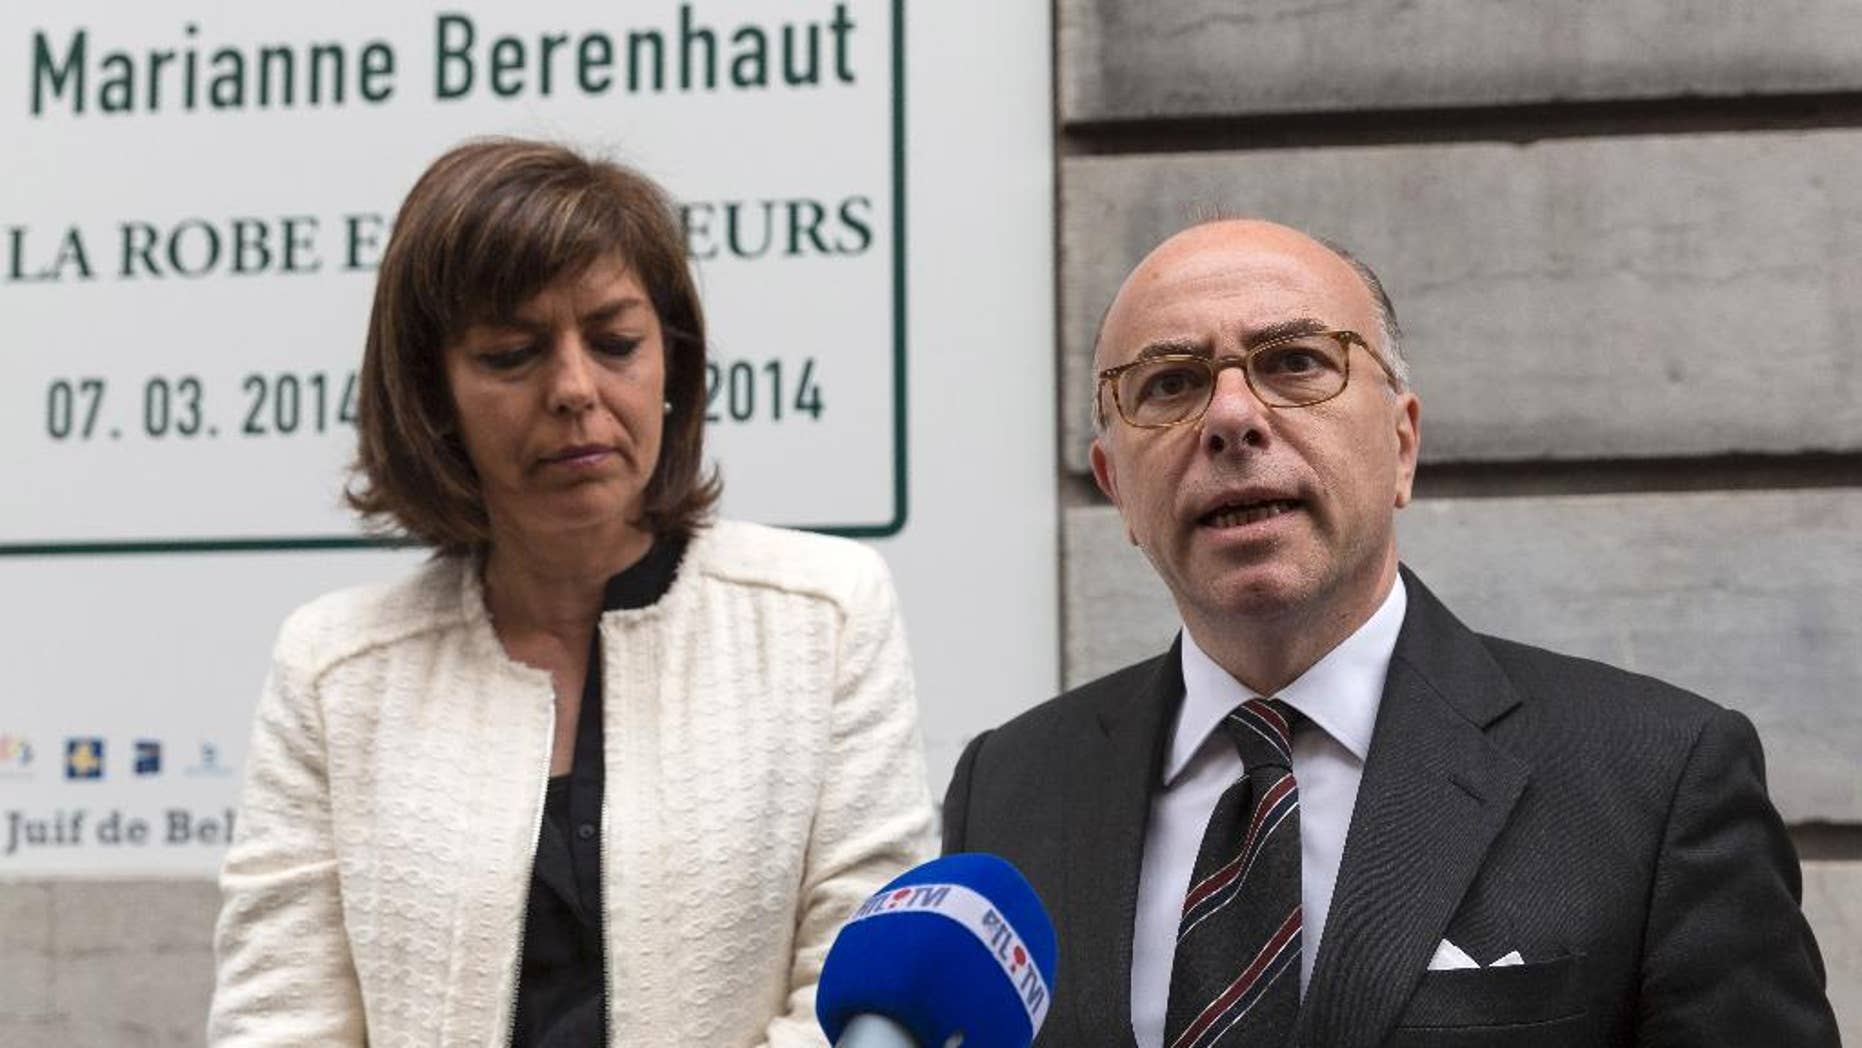 FILE - In this June 4, 2014 file photo, French Interior Minister Bernard Cazeneuve, right, and Belgium's Interior Minister Joelle Milquet speak with the press after laying a wreath at the Jewish Museum in Brussels on Wednesday, June 4, 2014. Recruiters for Islamic extremist groups are increasingly targeting French women and girls, with nearly 100 either in Syria or on their way and 175 being monitored at home, security officials say. France's Interior Ministry on Tuesday Sept.16, 2014 posted a video showing anguished family members of young people who left to fight alongside extremists, including a young man whose 15-year-old sister set out for what she thought was a humanitarian aid mission. She has not returned.  (AP Photo/Thierry Monasse, File)